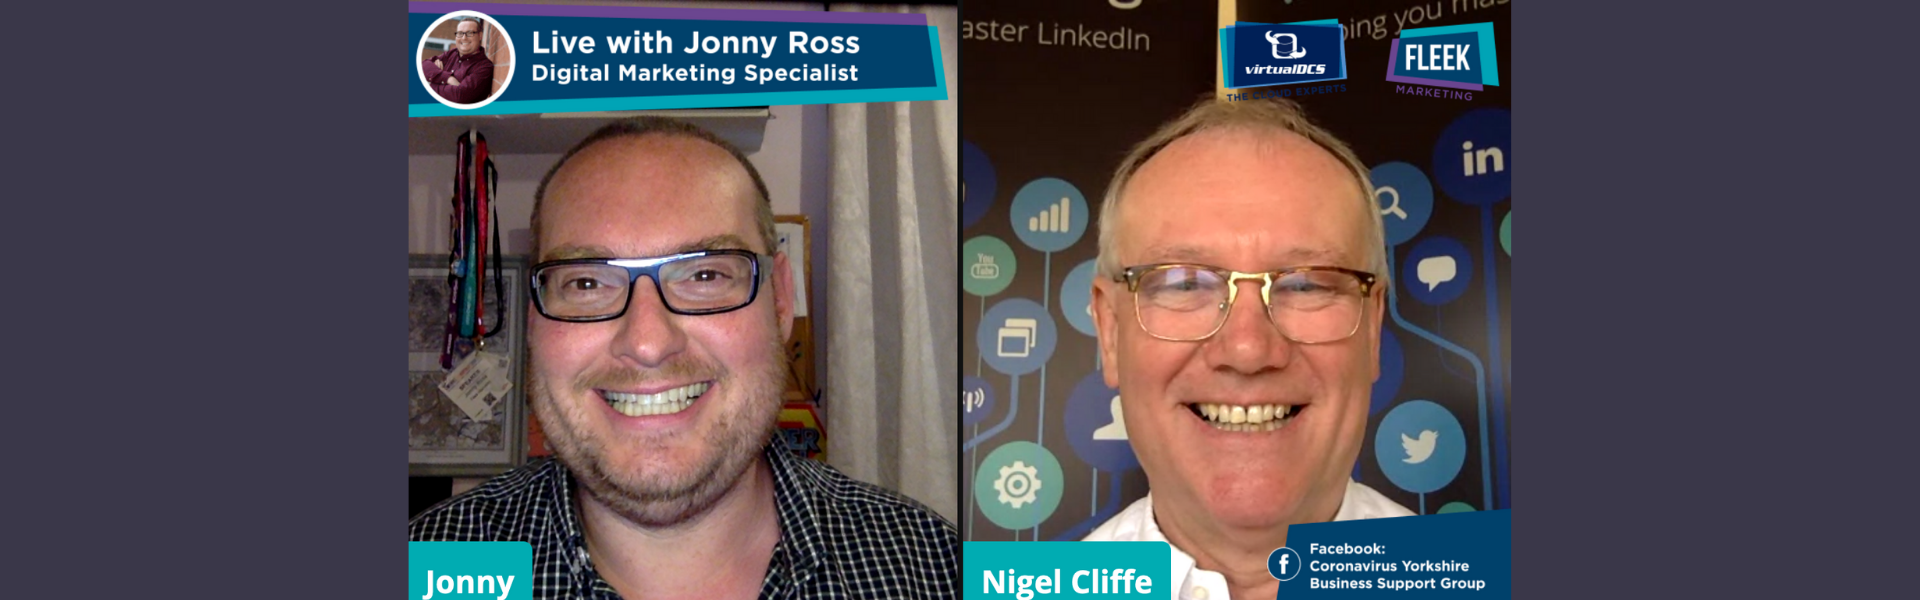 Jonny Ross and Nigel Cliffe answering LinkedIn questions